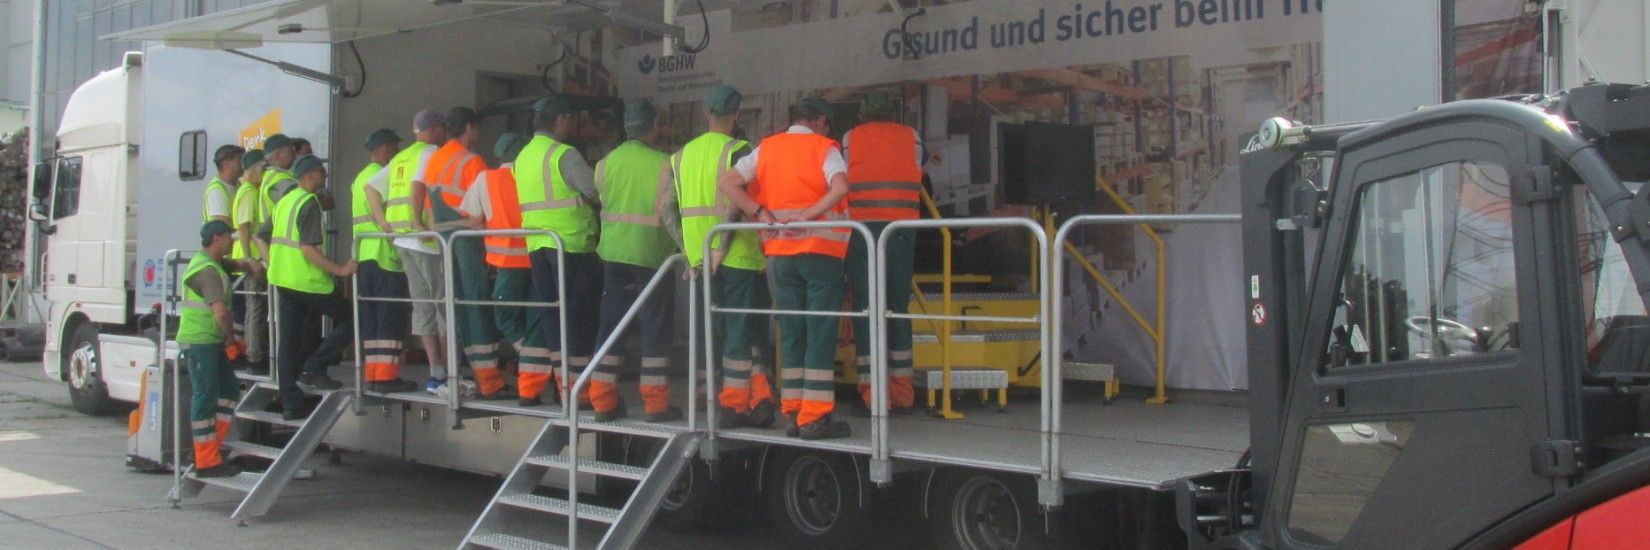 Health and Safety issues at first hand